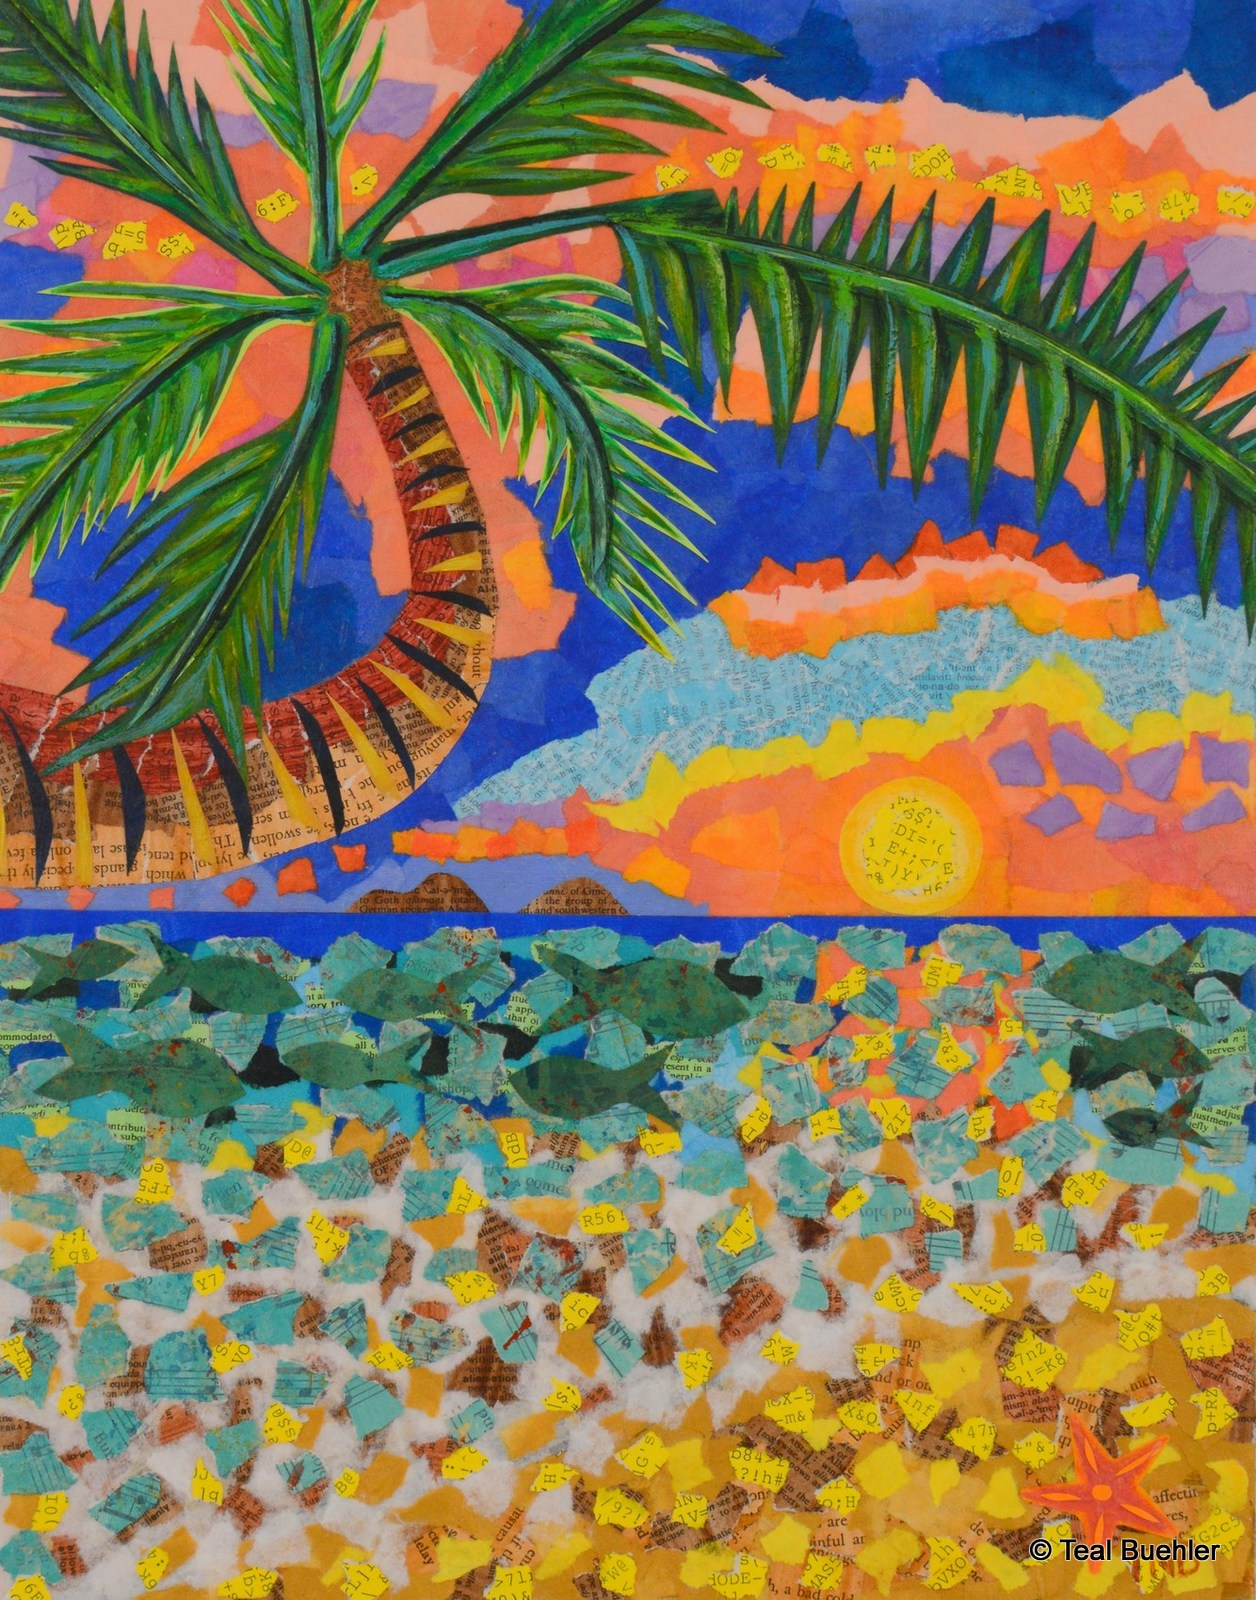 SOLD - Tropical Landscape - 11x14 Acrylic paint and collage on masonite